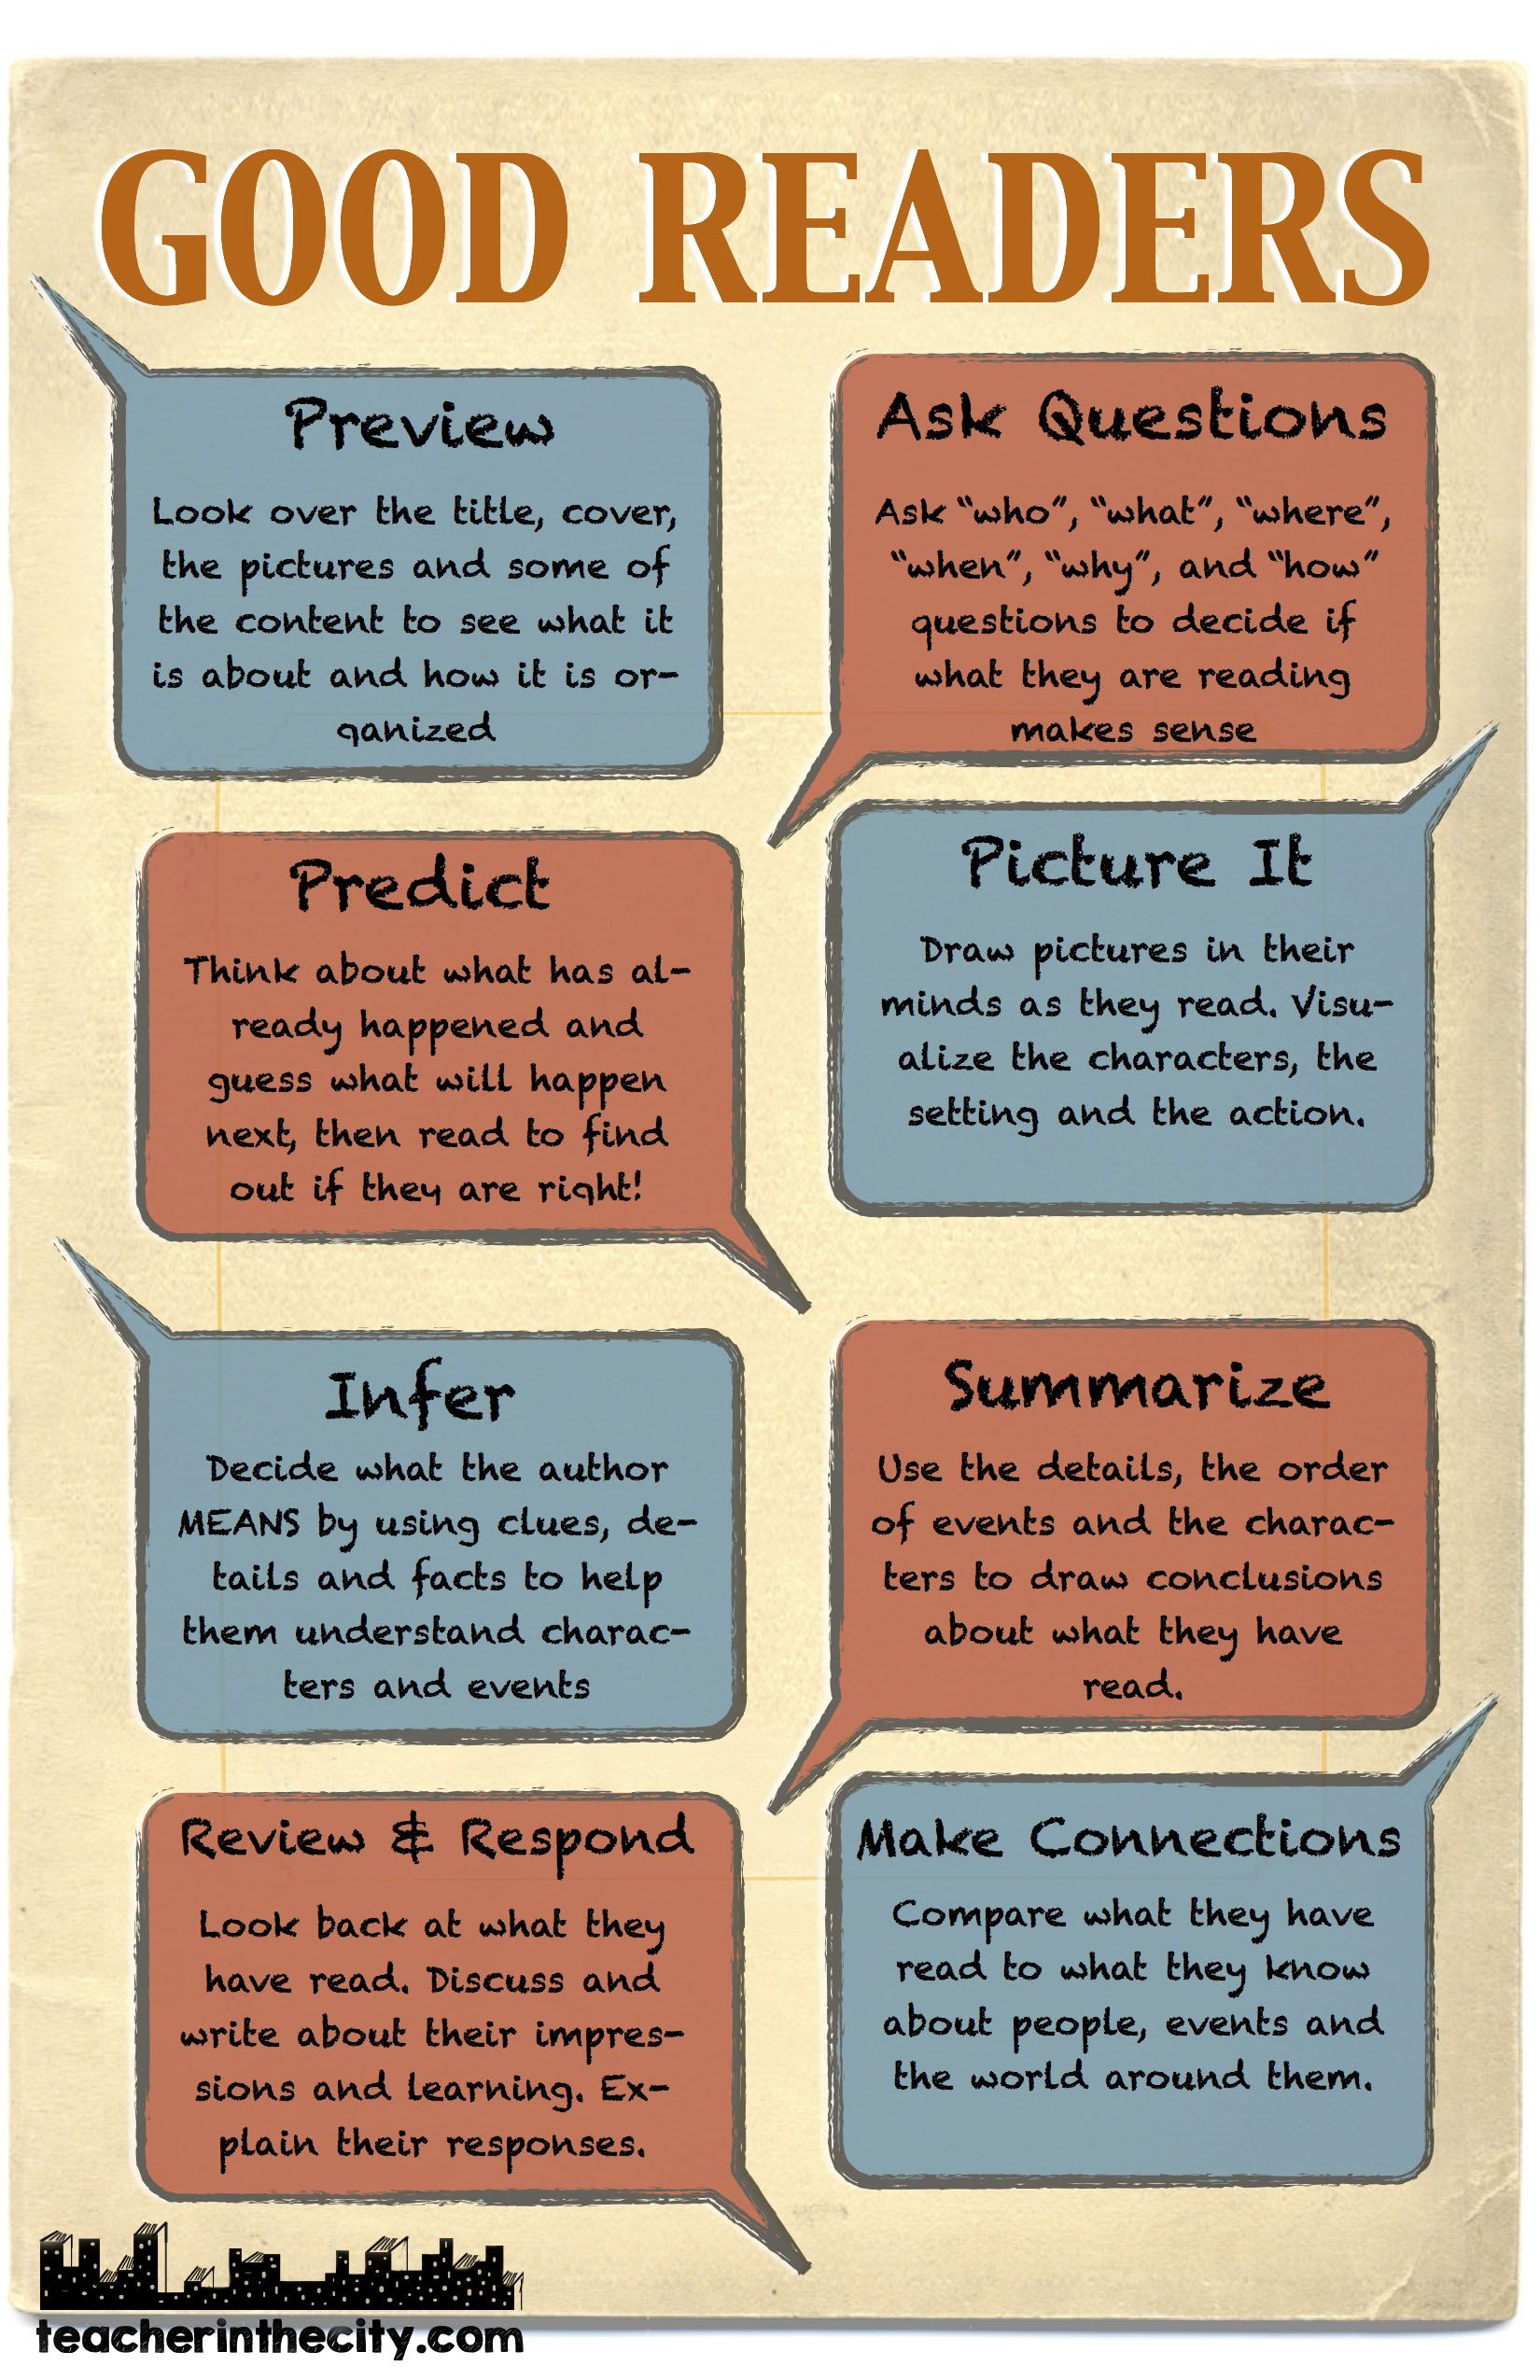 Pin By Christy Clow On 5th Grade Digital Learning Classroom Reading Websites For Kids Learning Websites For Kids